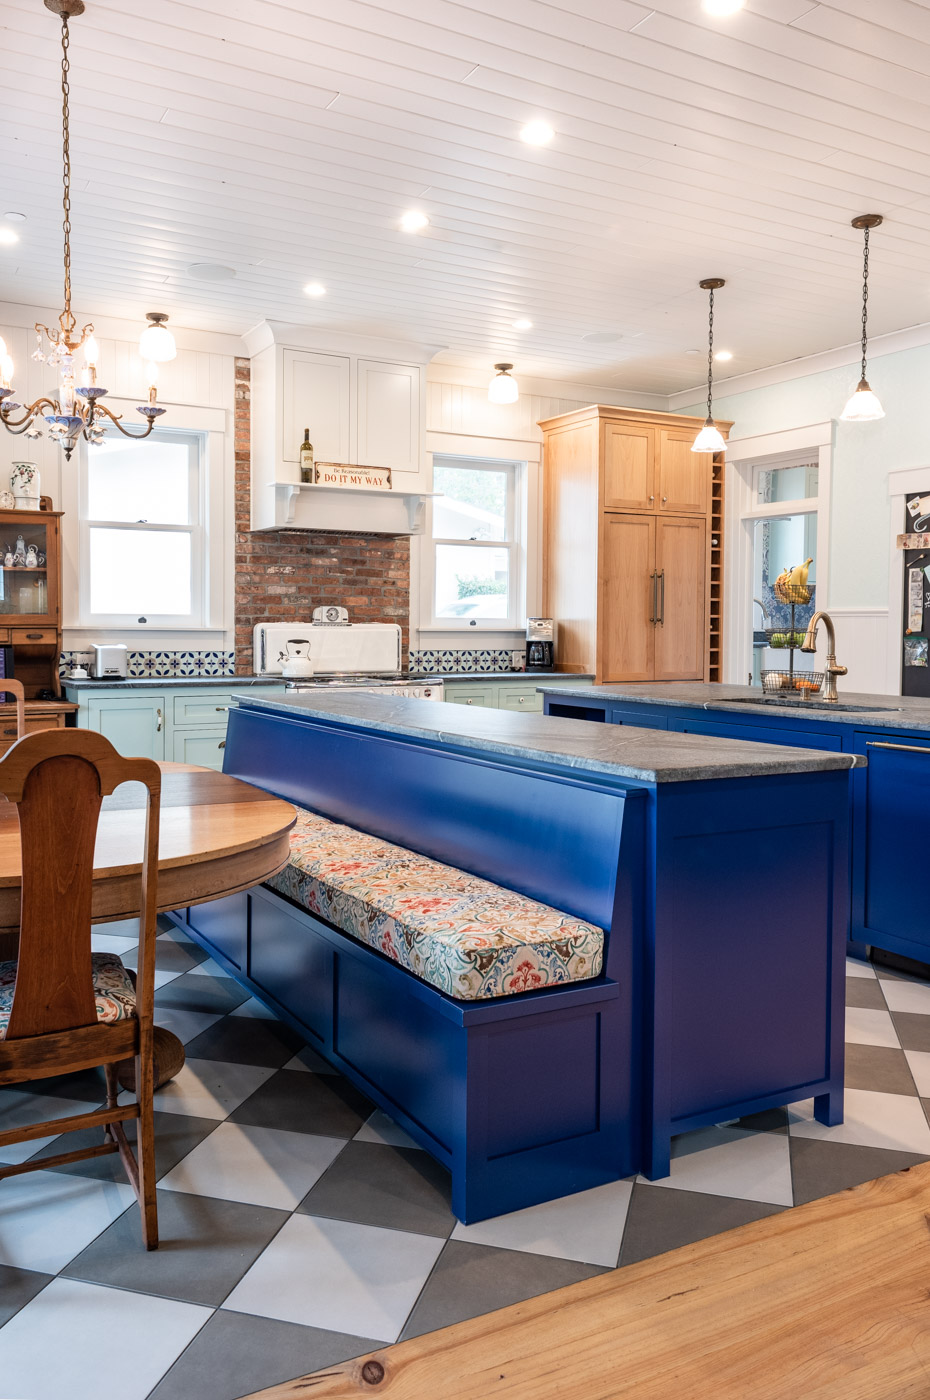 Eclectic Country Craftsman kitchen with custom blue painted cabinets and built in bench seating